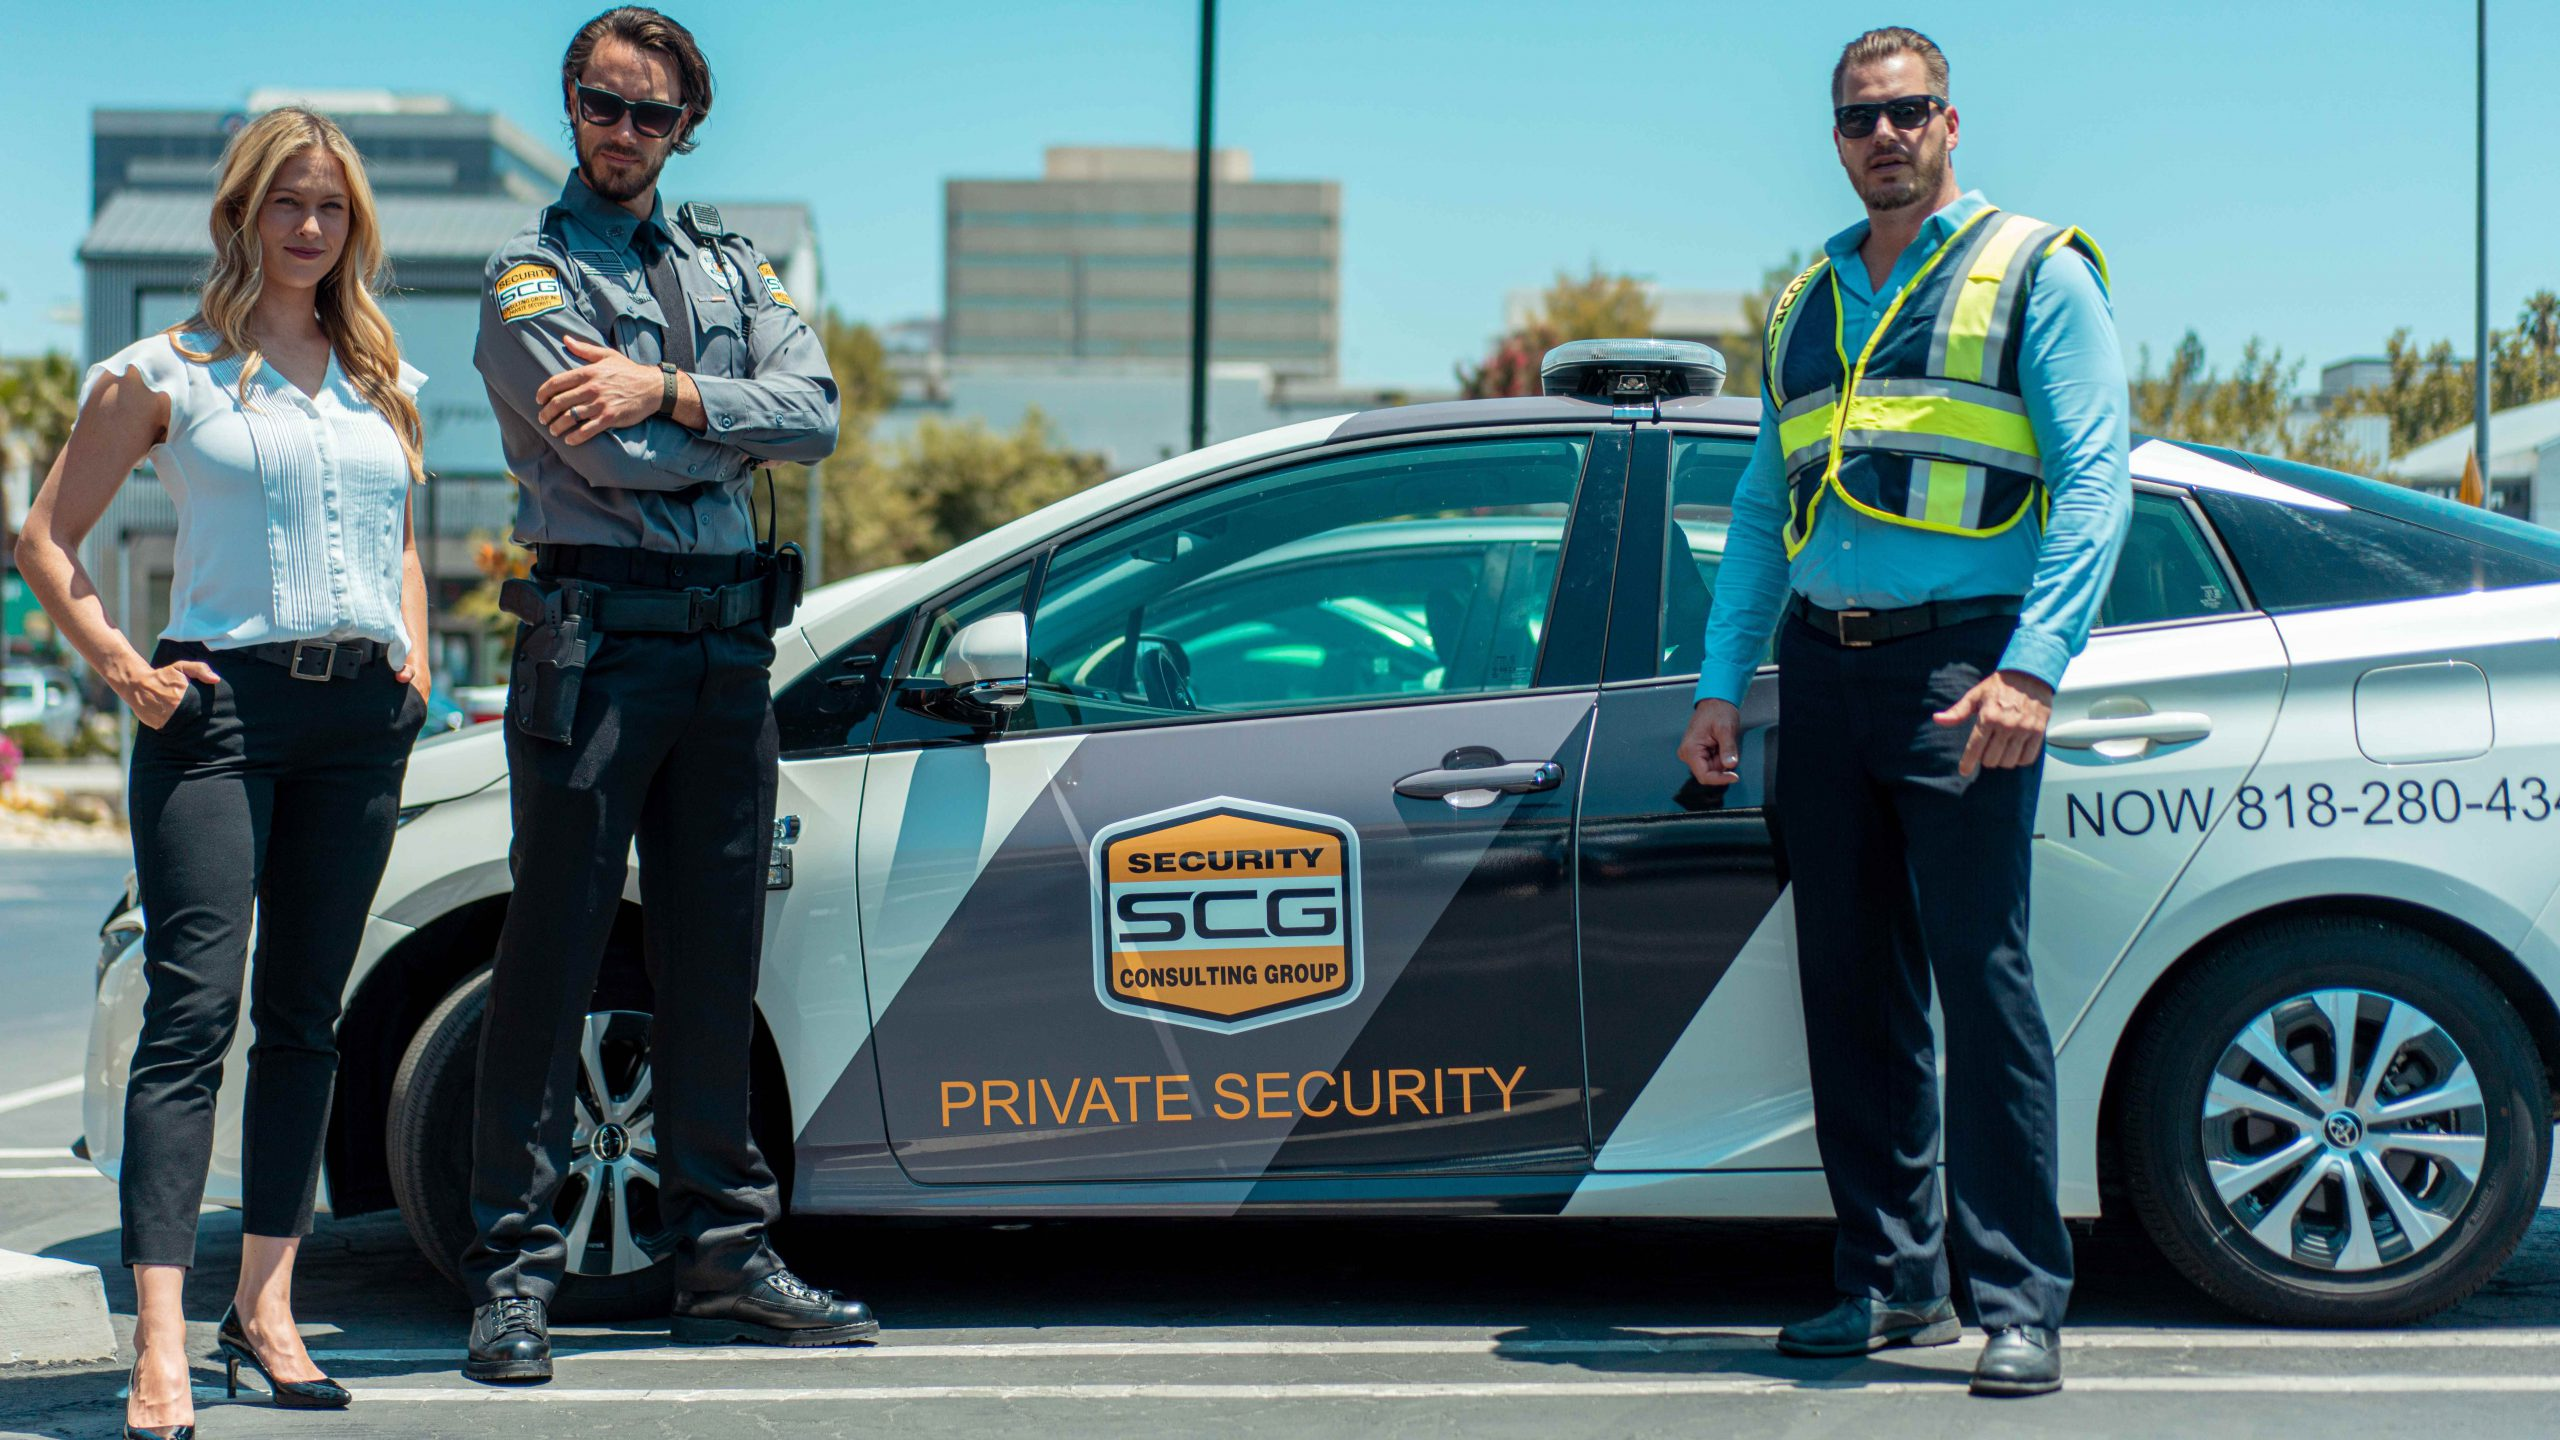 Security Consulting Group